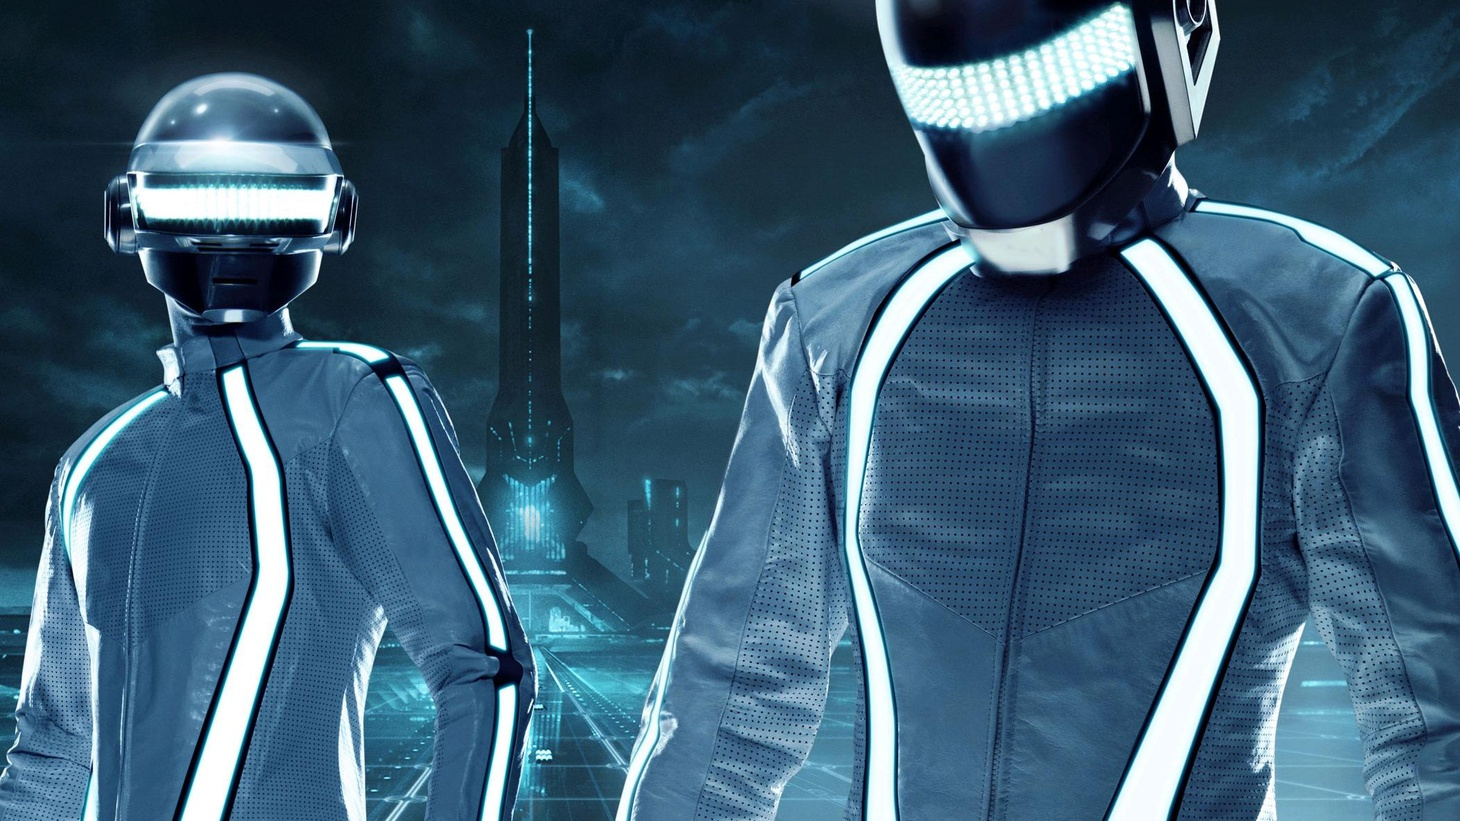 """KCRW is proud to offer an exclusive track from the TRON: Legacy soundtrack, composed by Daft Punk. Today's Top Tune """"Solar Sailer"""" was among the initial demos they submitted to TRON director Joseph Kosinski during the two-year process of working on the score and shows their seamless merging of electronic and orchestral elements."""